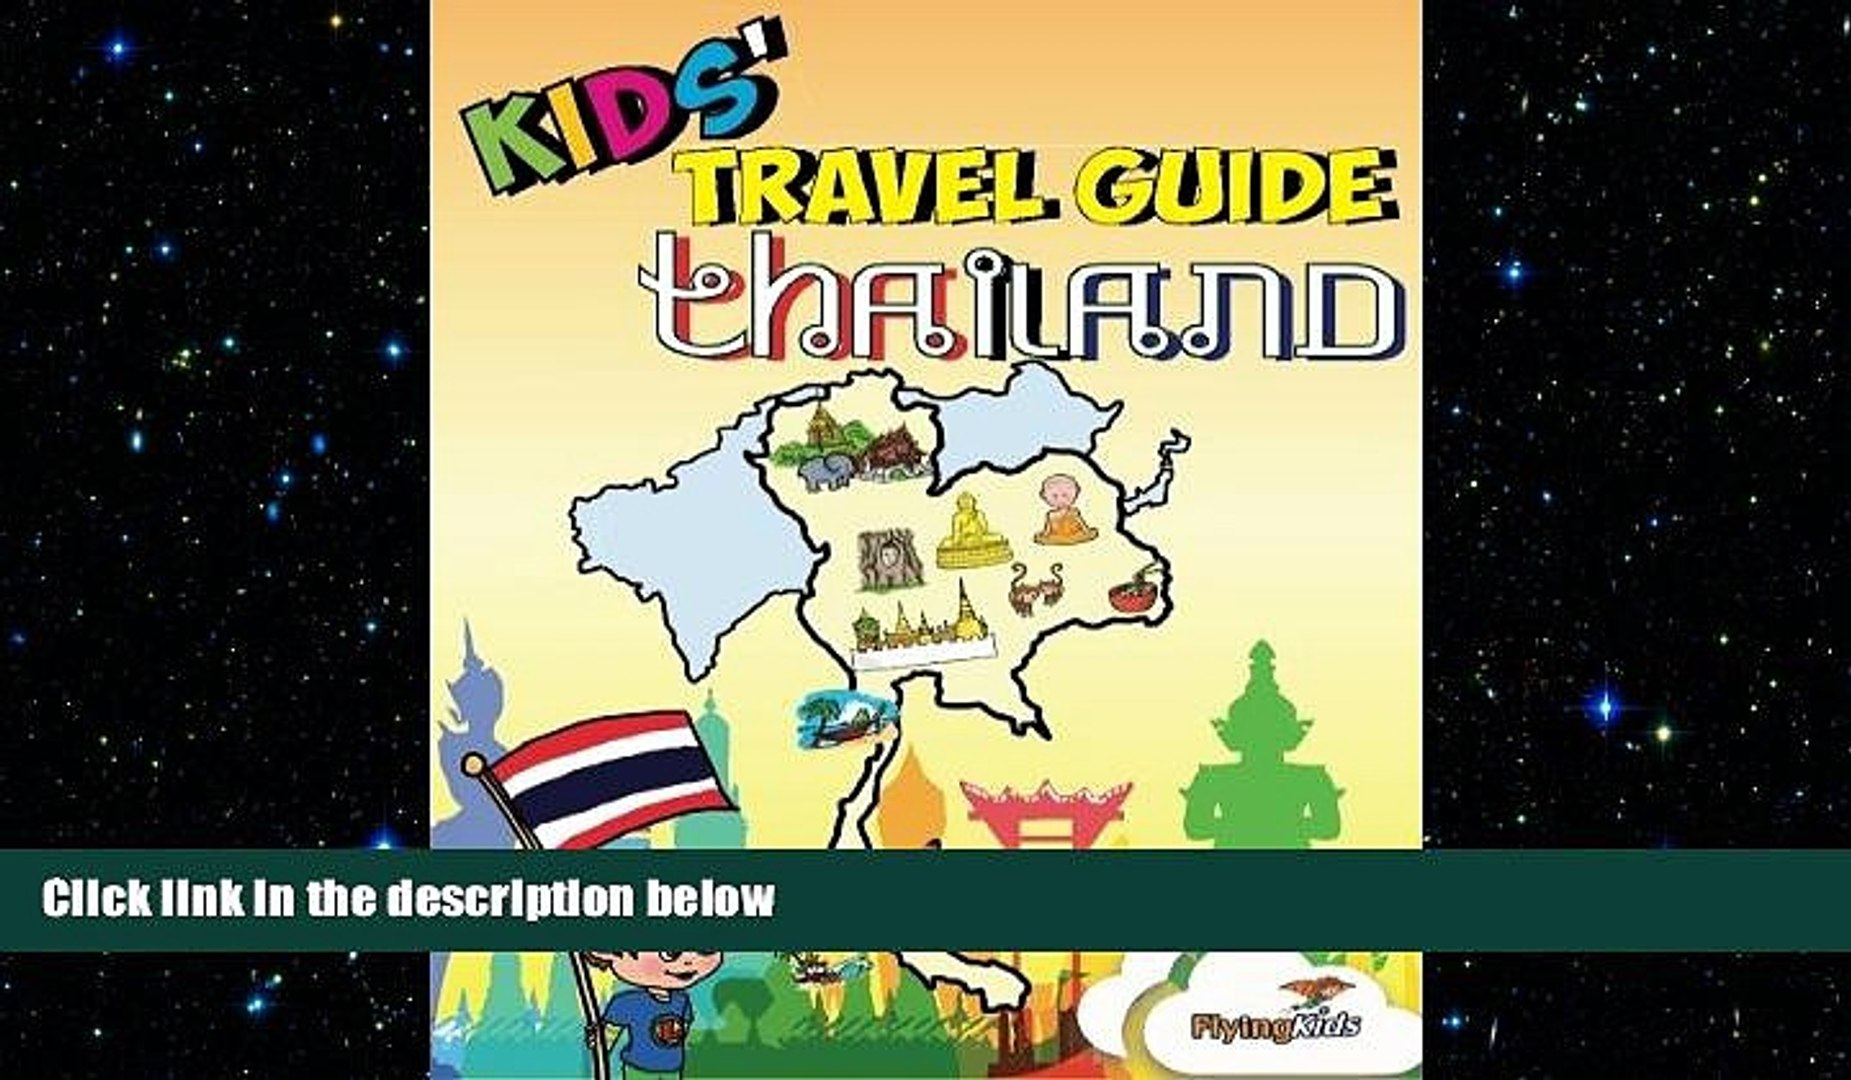 Thailand: No matter where you visit in Thailand fun activities useful tips quizzes and Leonardo! kids enjoy fascinating facts Kids Travel Guides